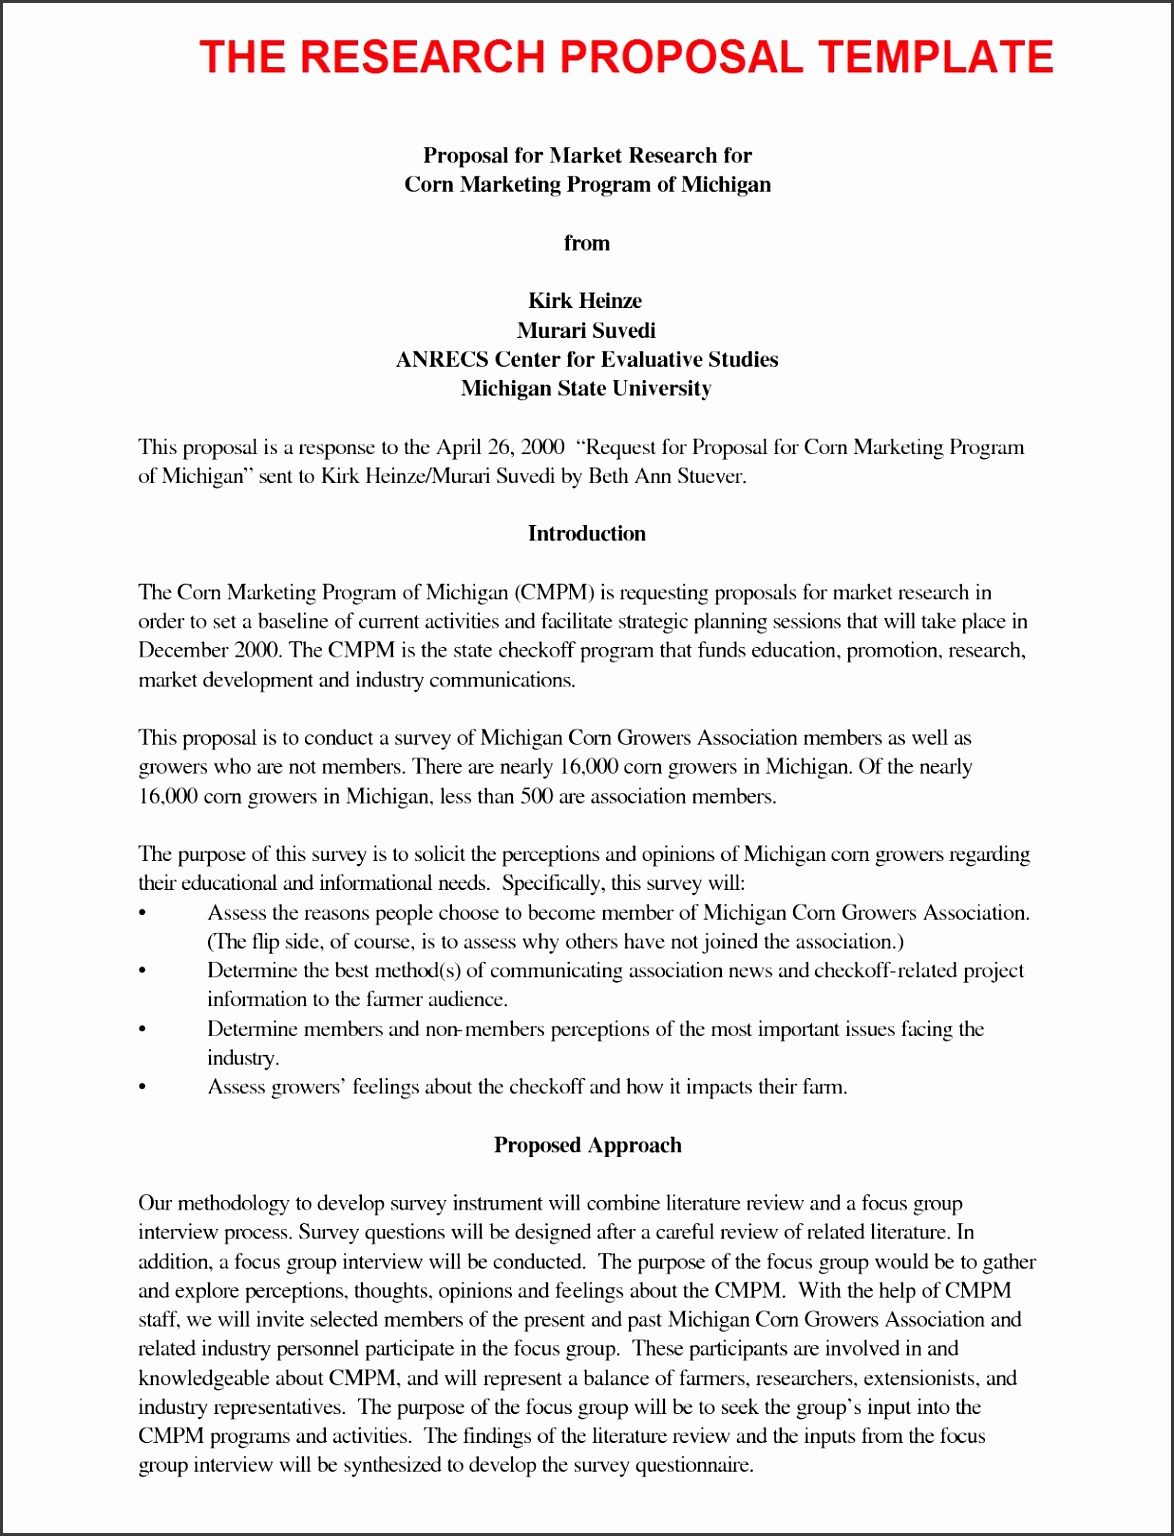 formal proposal templatebusiness proposal letter THE RESEARCH PROPOSAL TEMPLATE zp7DZipG